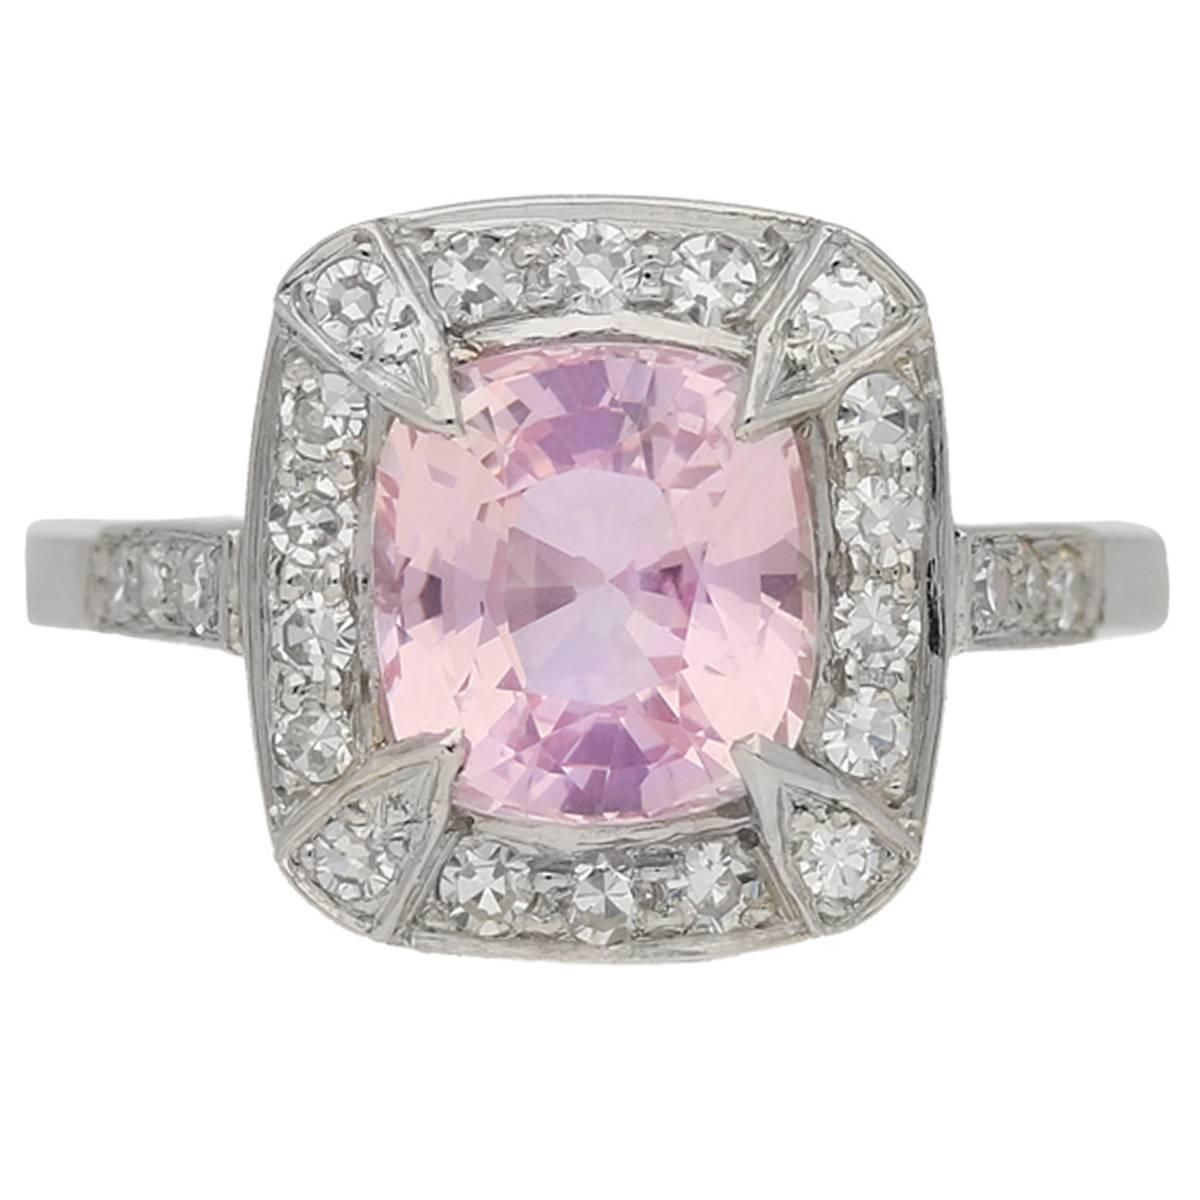 Natural untreated padparadscha sapphire and diamond cluster ring